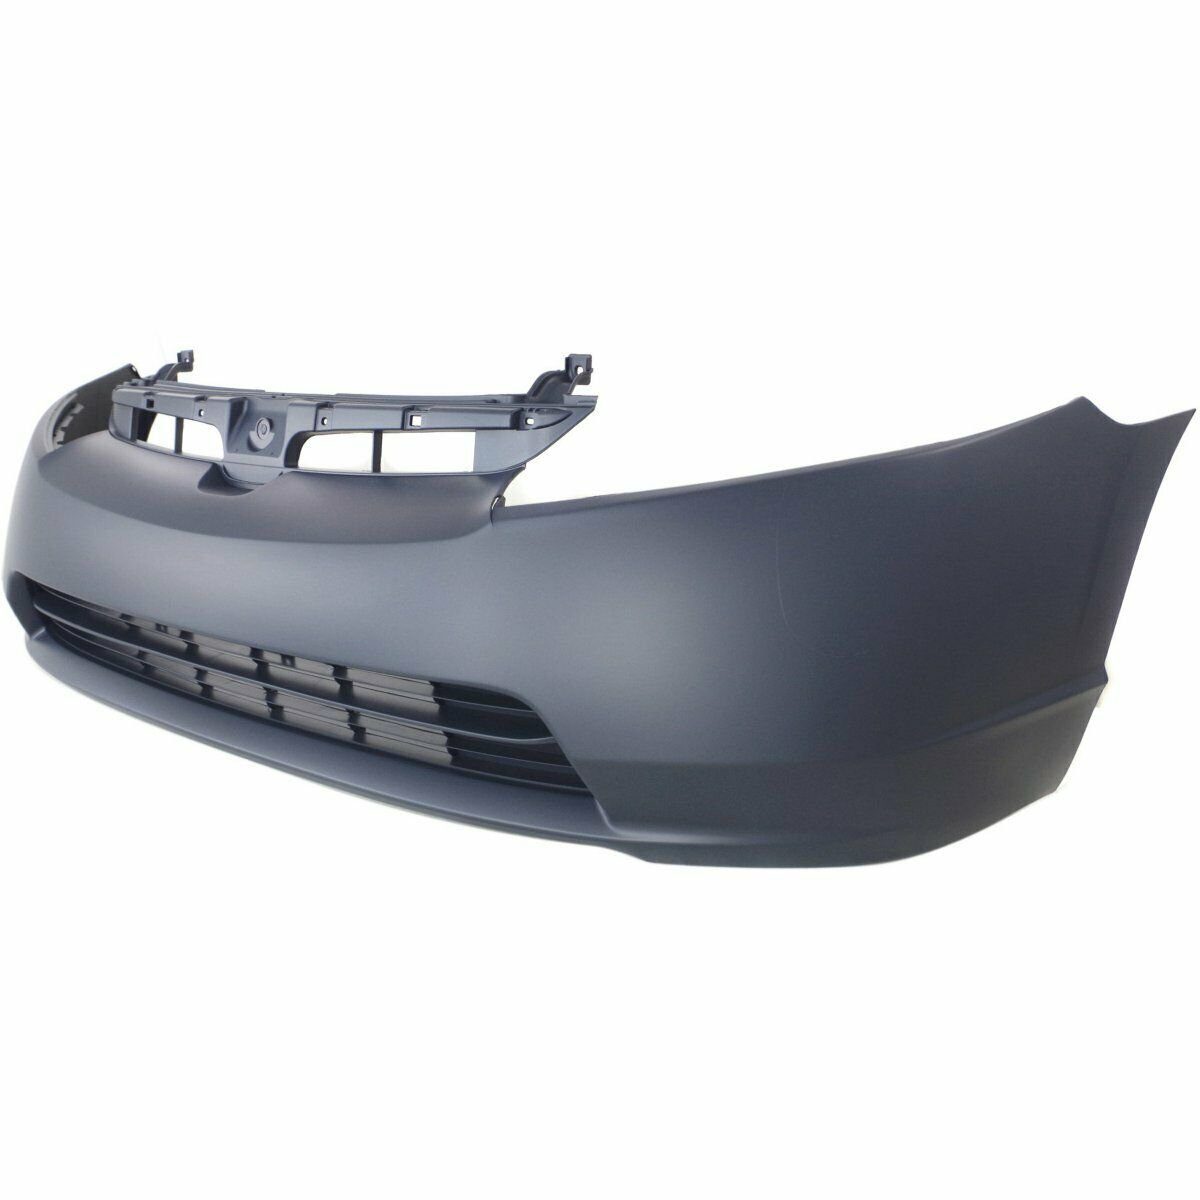 2006-2008 Honda Civic Sedan 1.8L Front Bumper Painted to Match